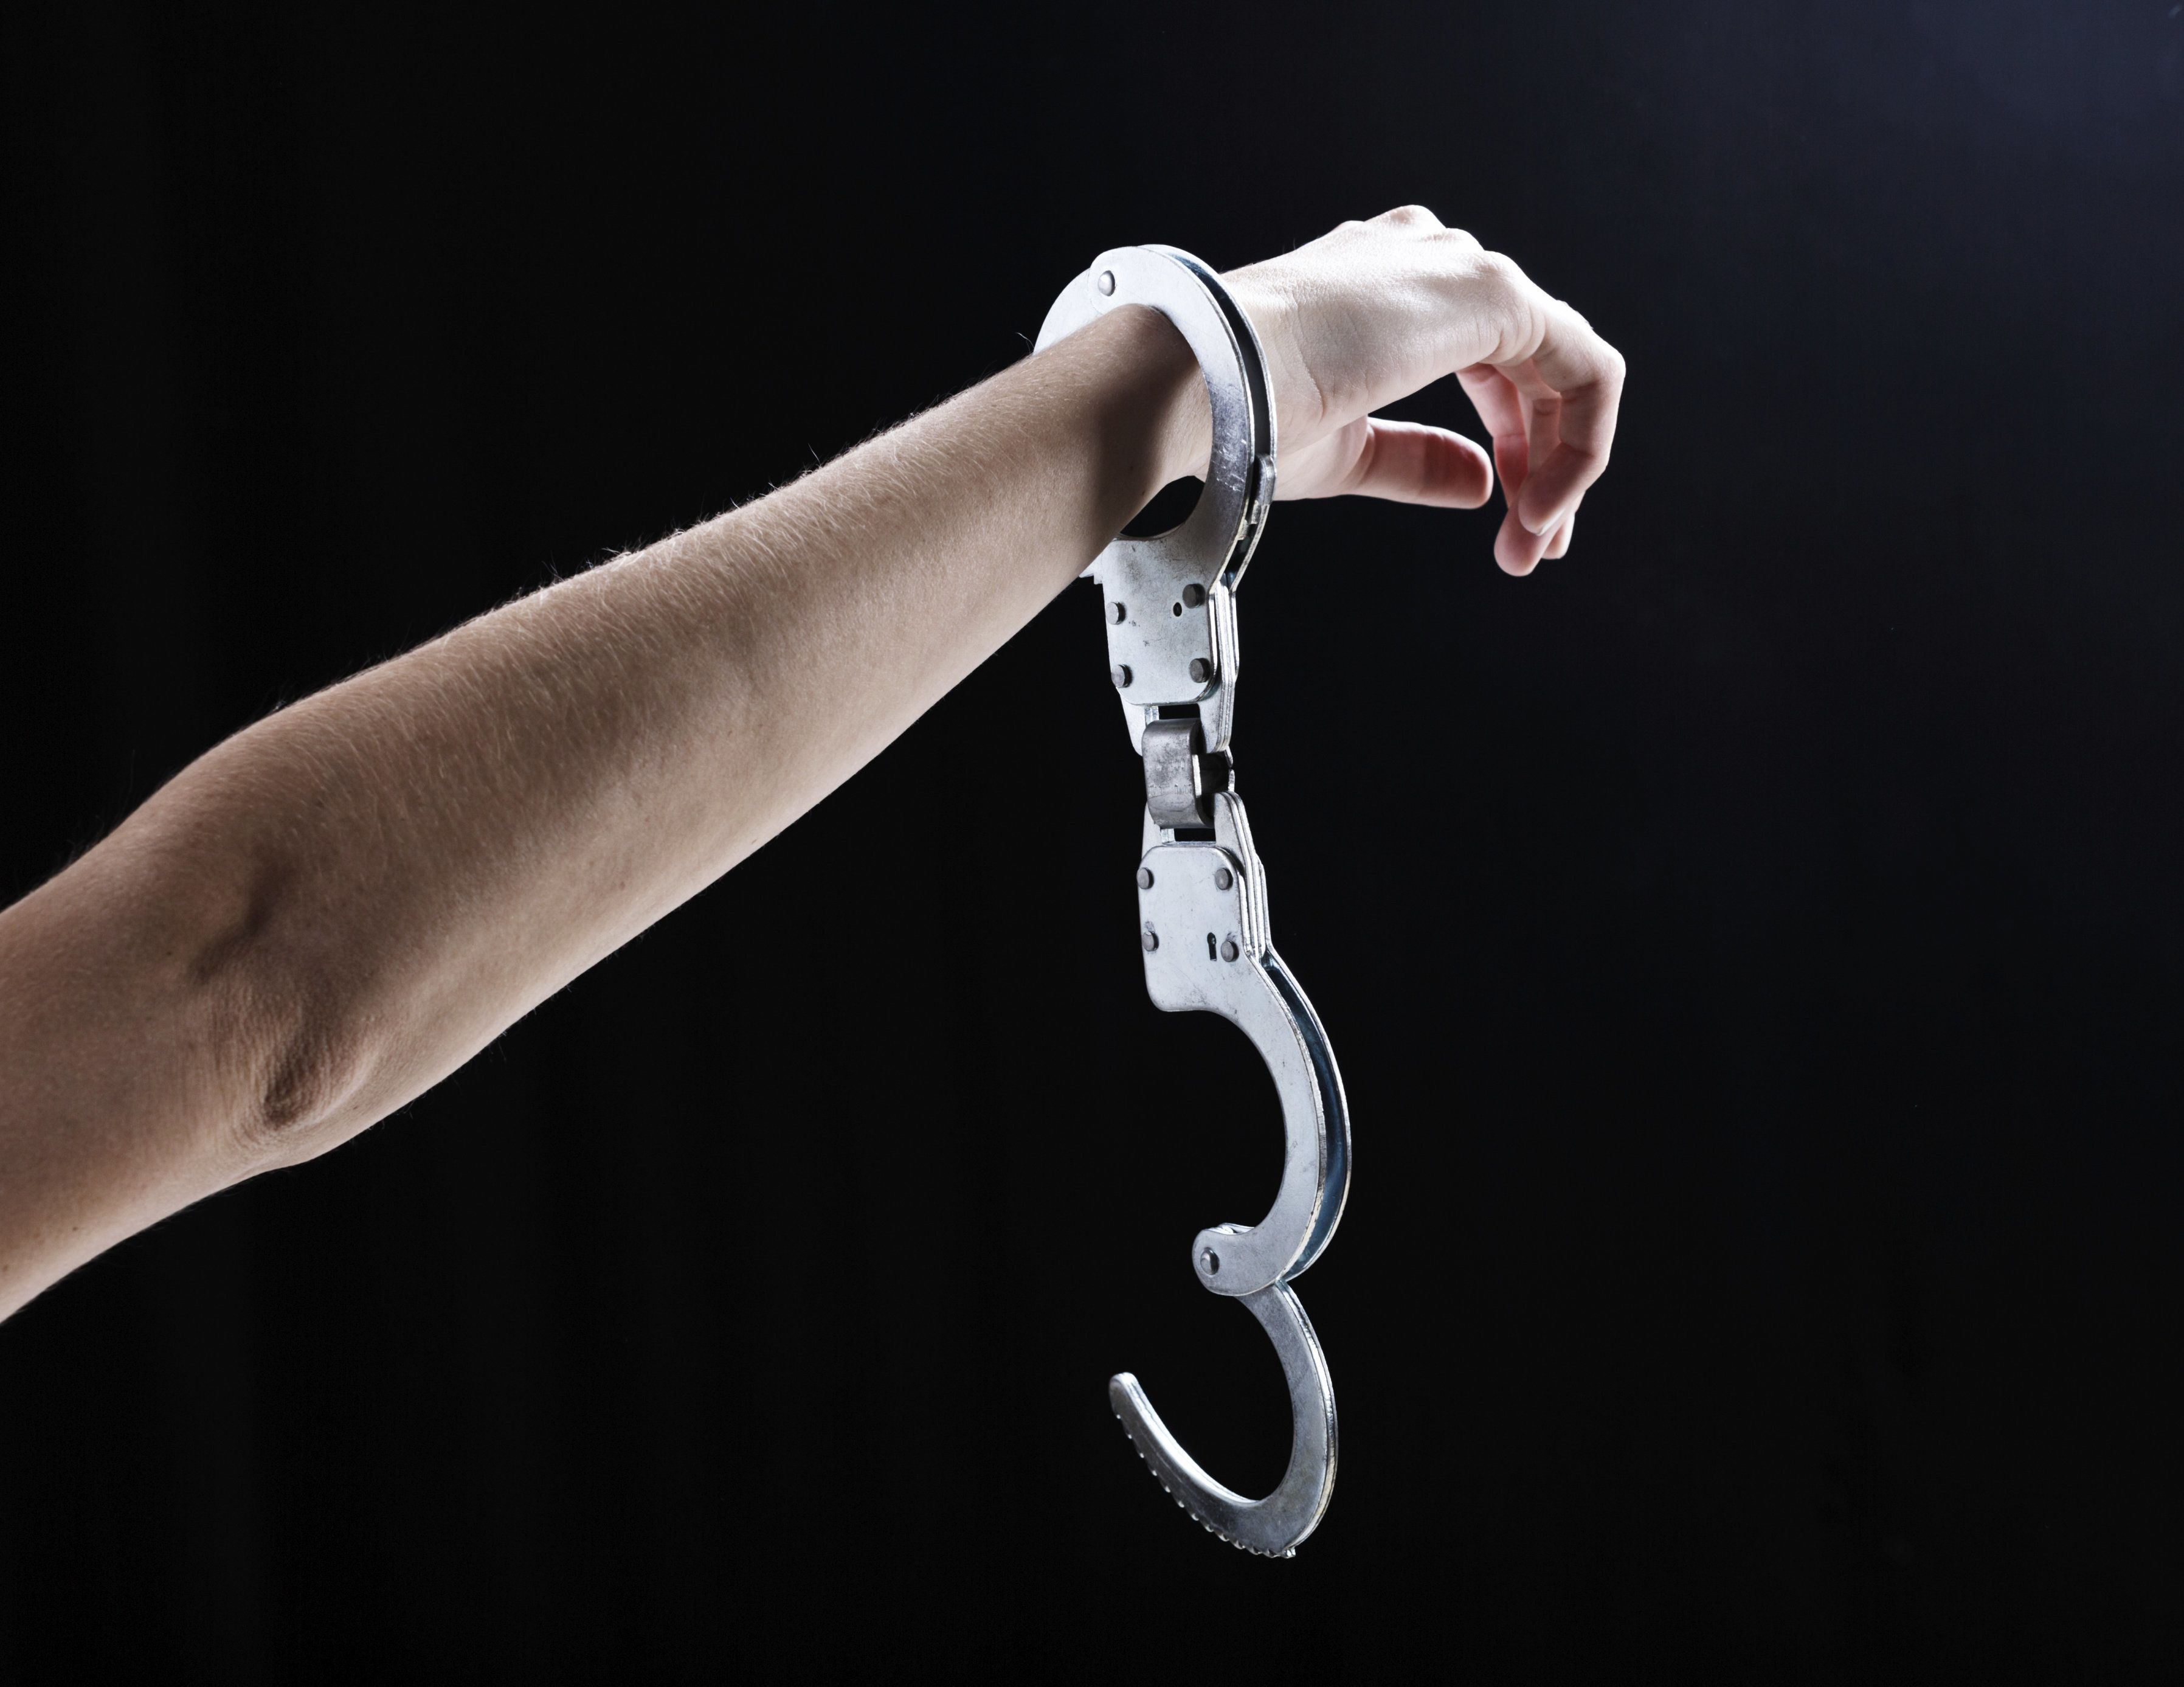 A woman's hand, holding up a hand wearing a single, open handcuff  against a black bakcground. Symbolic of release or freedom from almost anything!